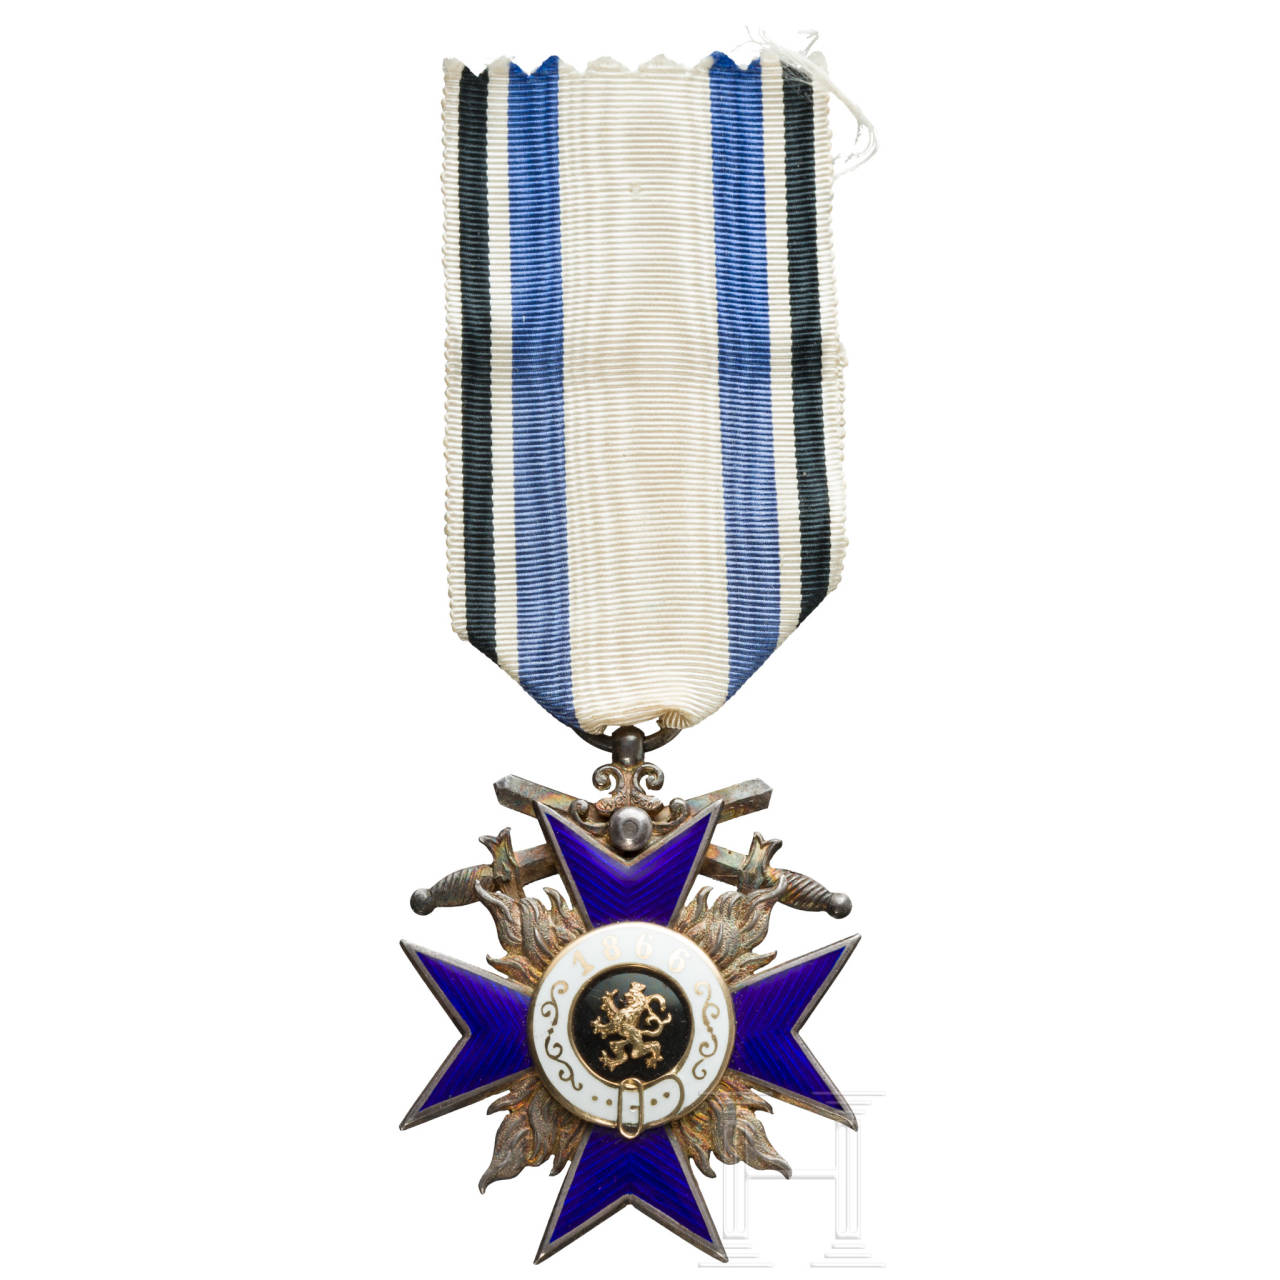 Military Order of Merit - Cross 4th class with swords, made by Weiss